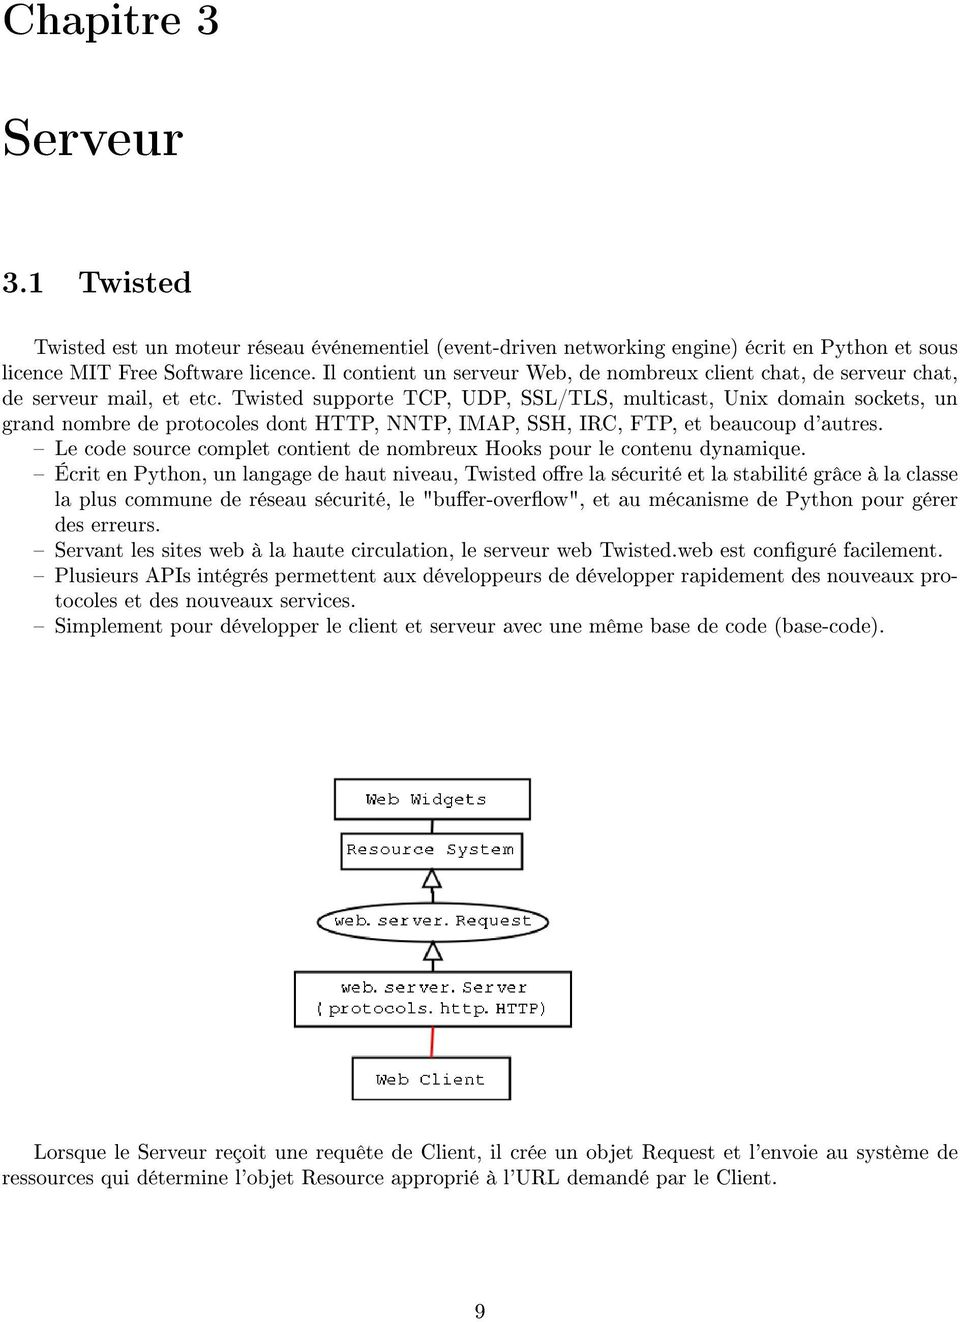 Twisted supporte TCP, UDP, SSL/TLS, multicast, Unix domain sockets, un grand nombre de protocoles dont HTTP, NNTP, IMAP, SSH, IRC, FTP, et beaucoup d'autres.